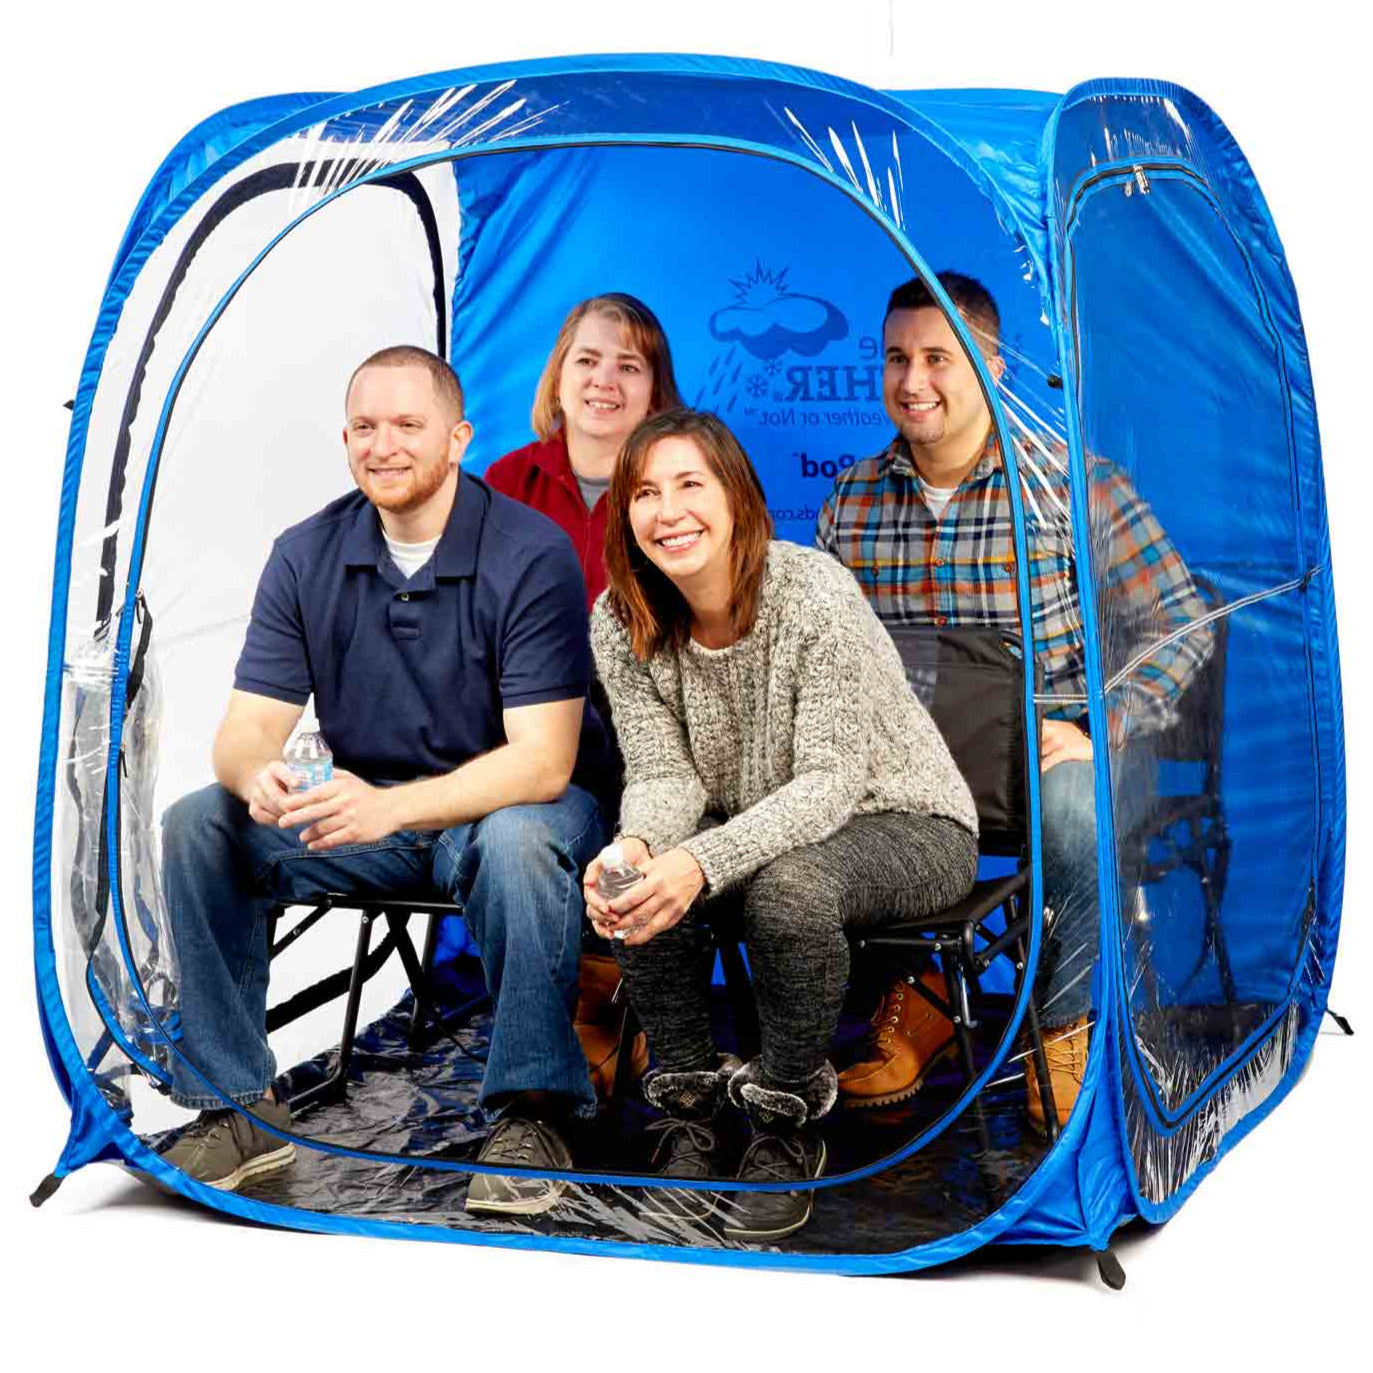 MyPod Mega 4-Person Pop-up Tent - Under the Weather® - Personal pop-up sports tent for mom, dad, kids, parents - Perfect for soccer, baseball, softball, football, youth team sports - As Seen on Shark Tank